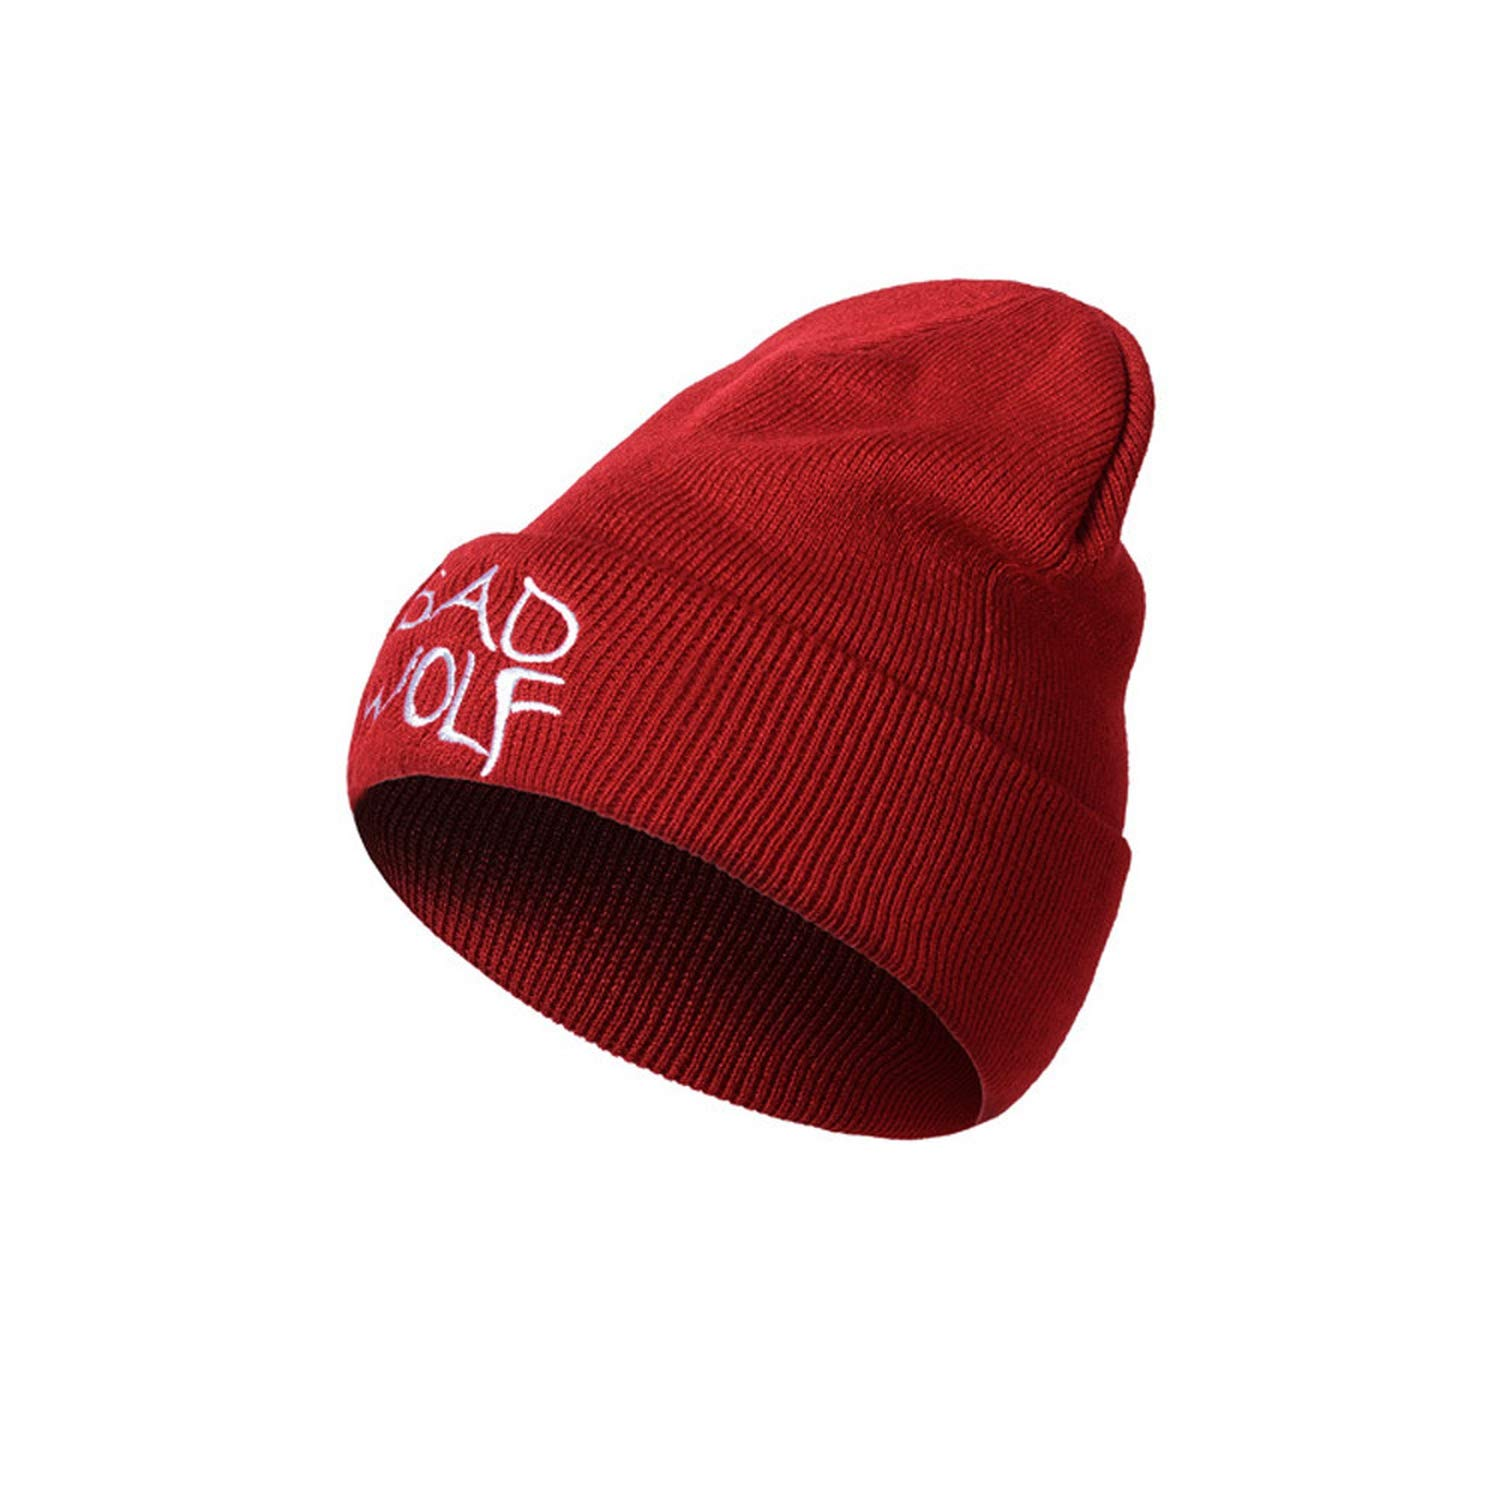 3a6c17aab20 Winter Knitted Hat Warm Casual Beanie Caps Hip hop Bad Wolf Letter  Embroidery 2019 New Female Fashion Hats at Amazon Women s Clothing store